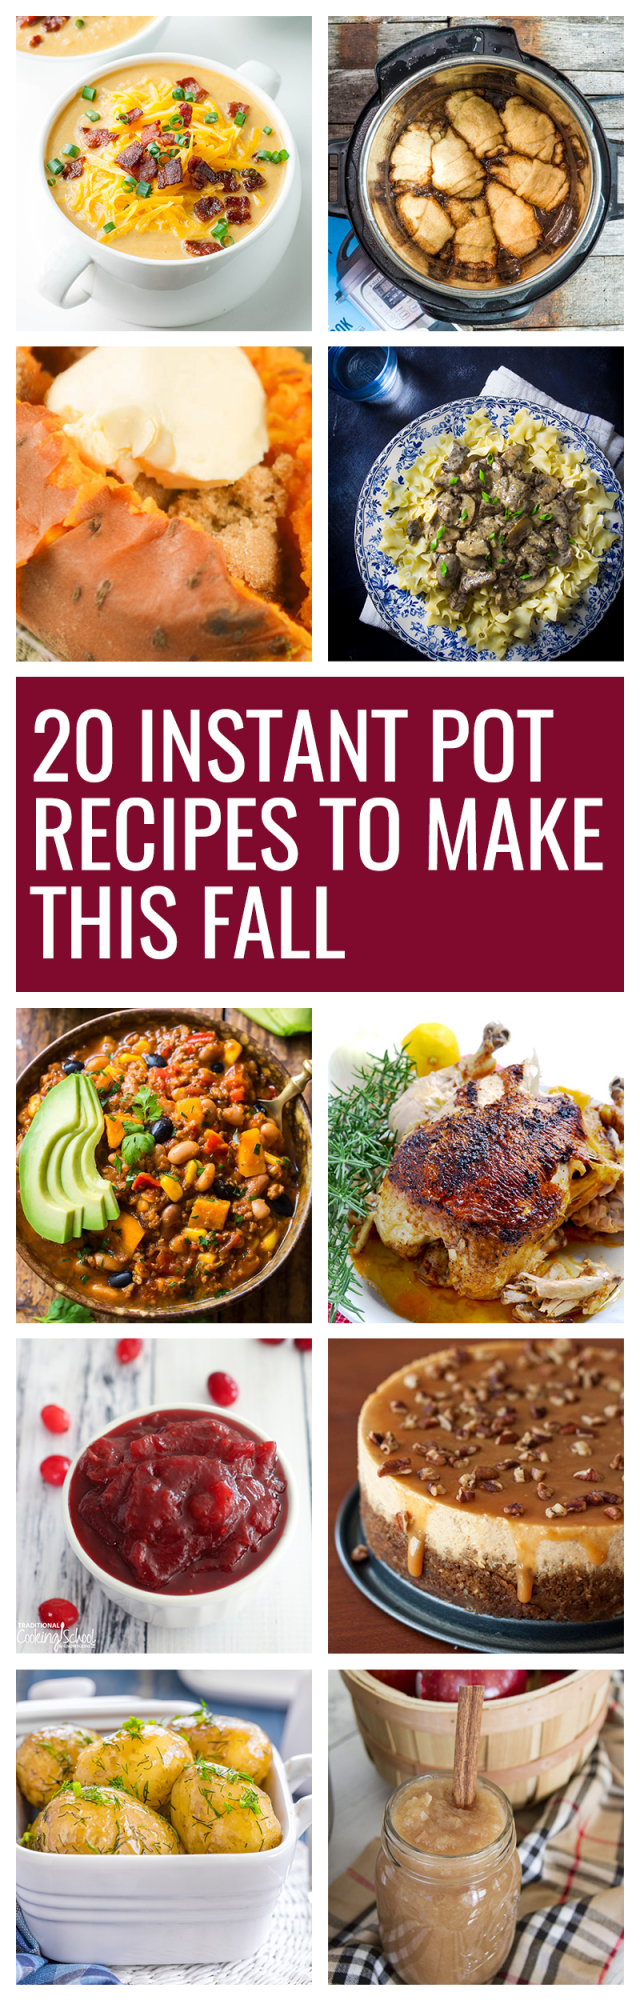 Fall is the best time to bust out your instant pot. There are so many fall-inspired instant pot recipes for cozy, crisp autumn days.